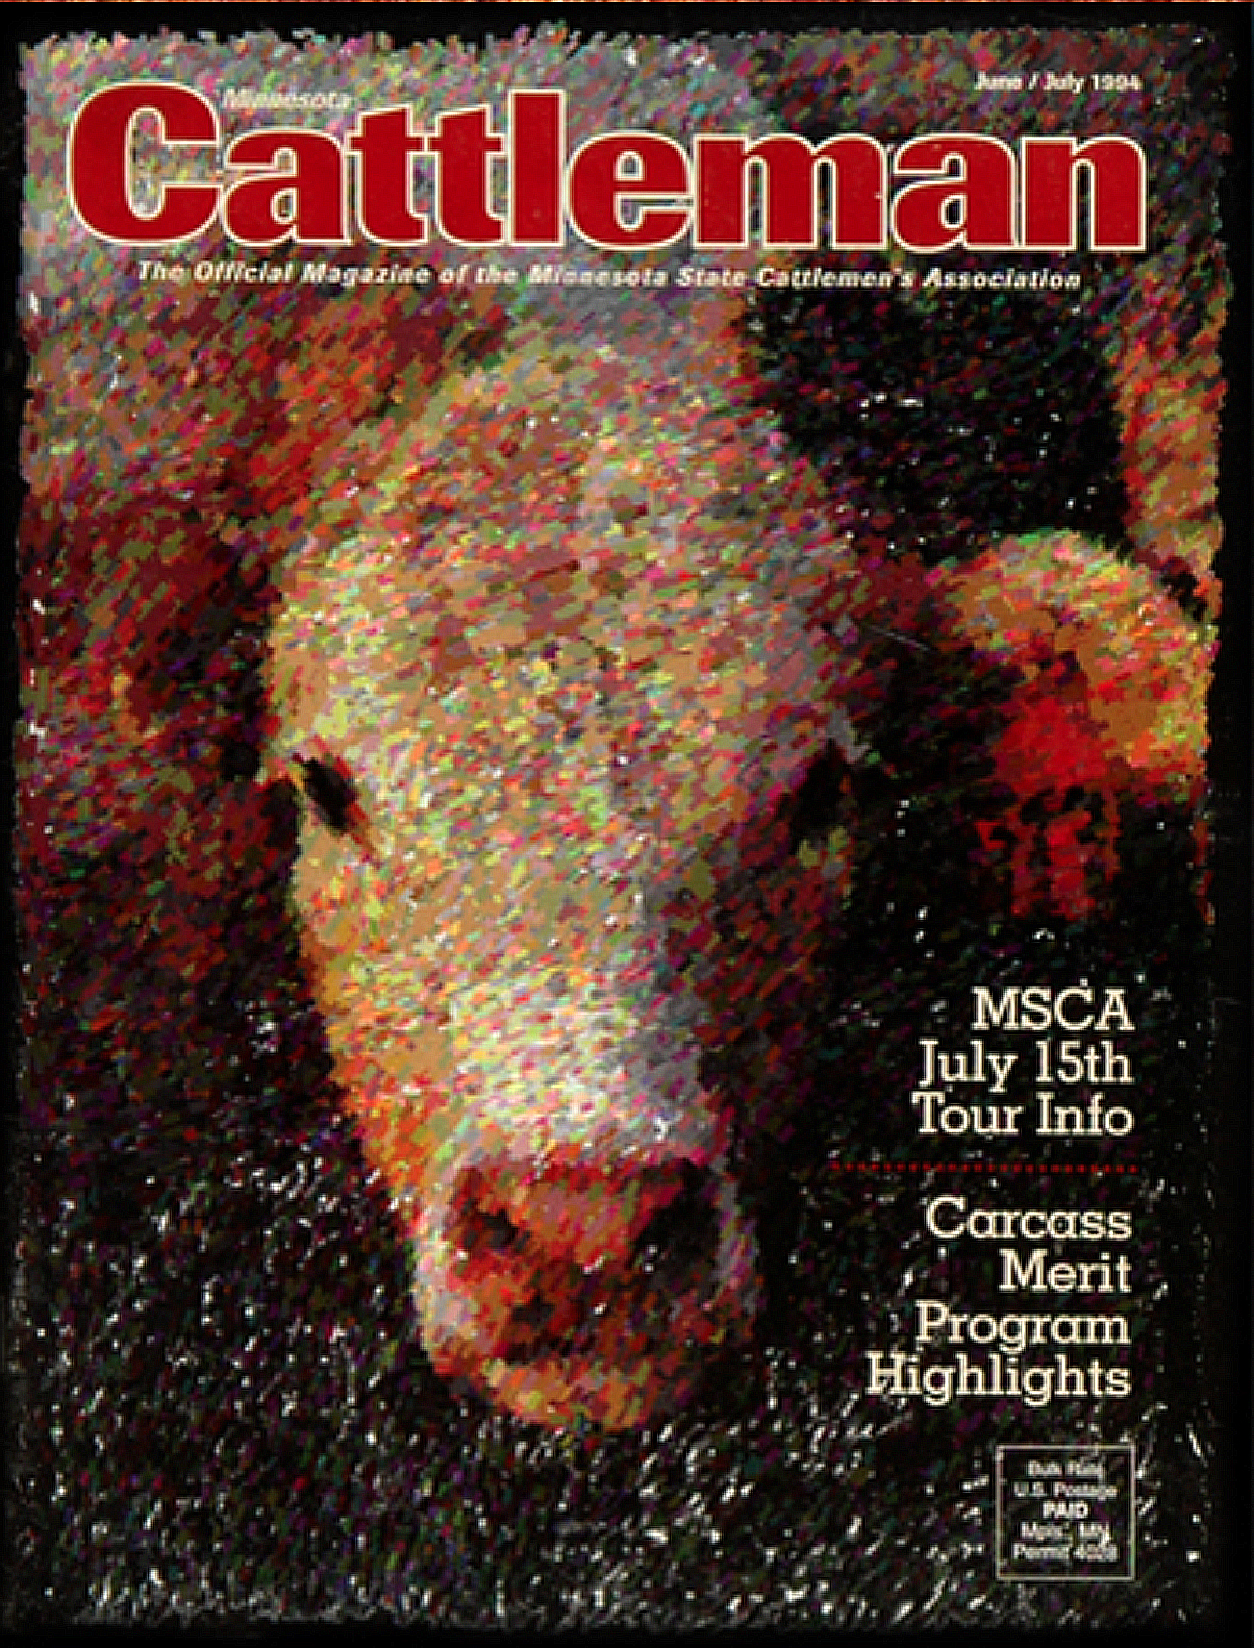 Cattlemsan Cover